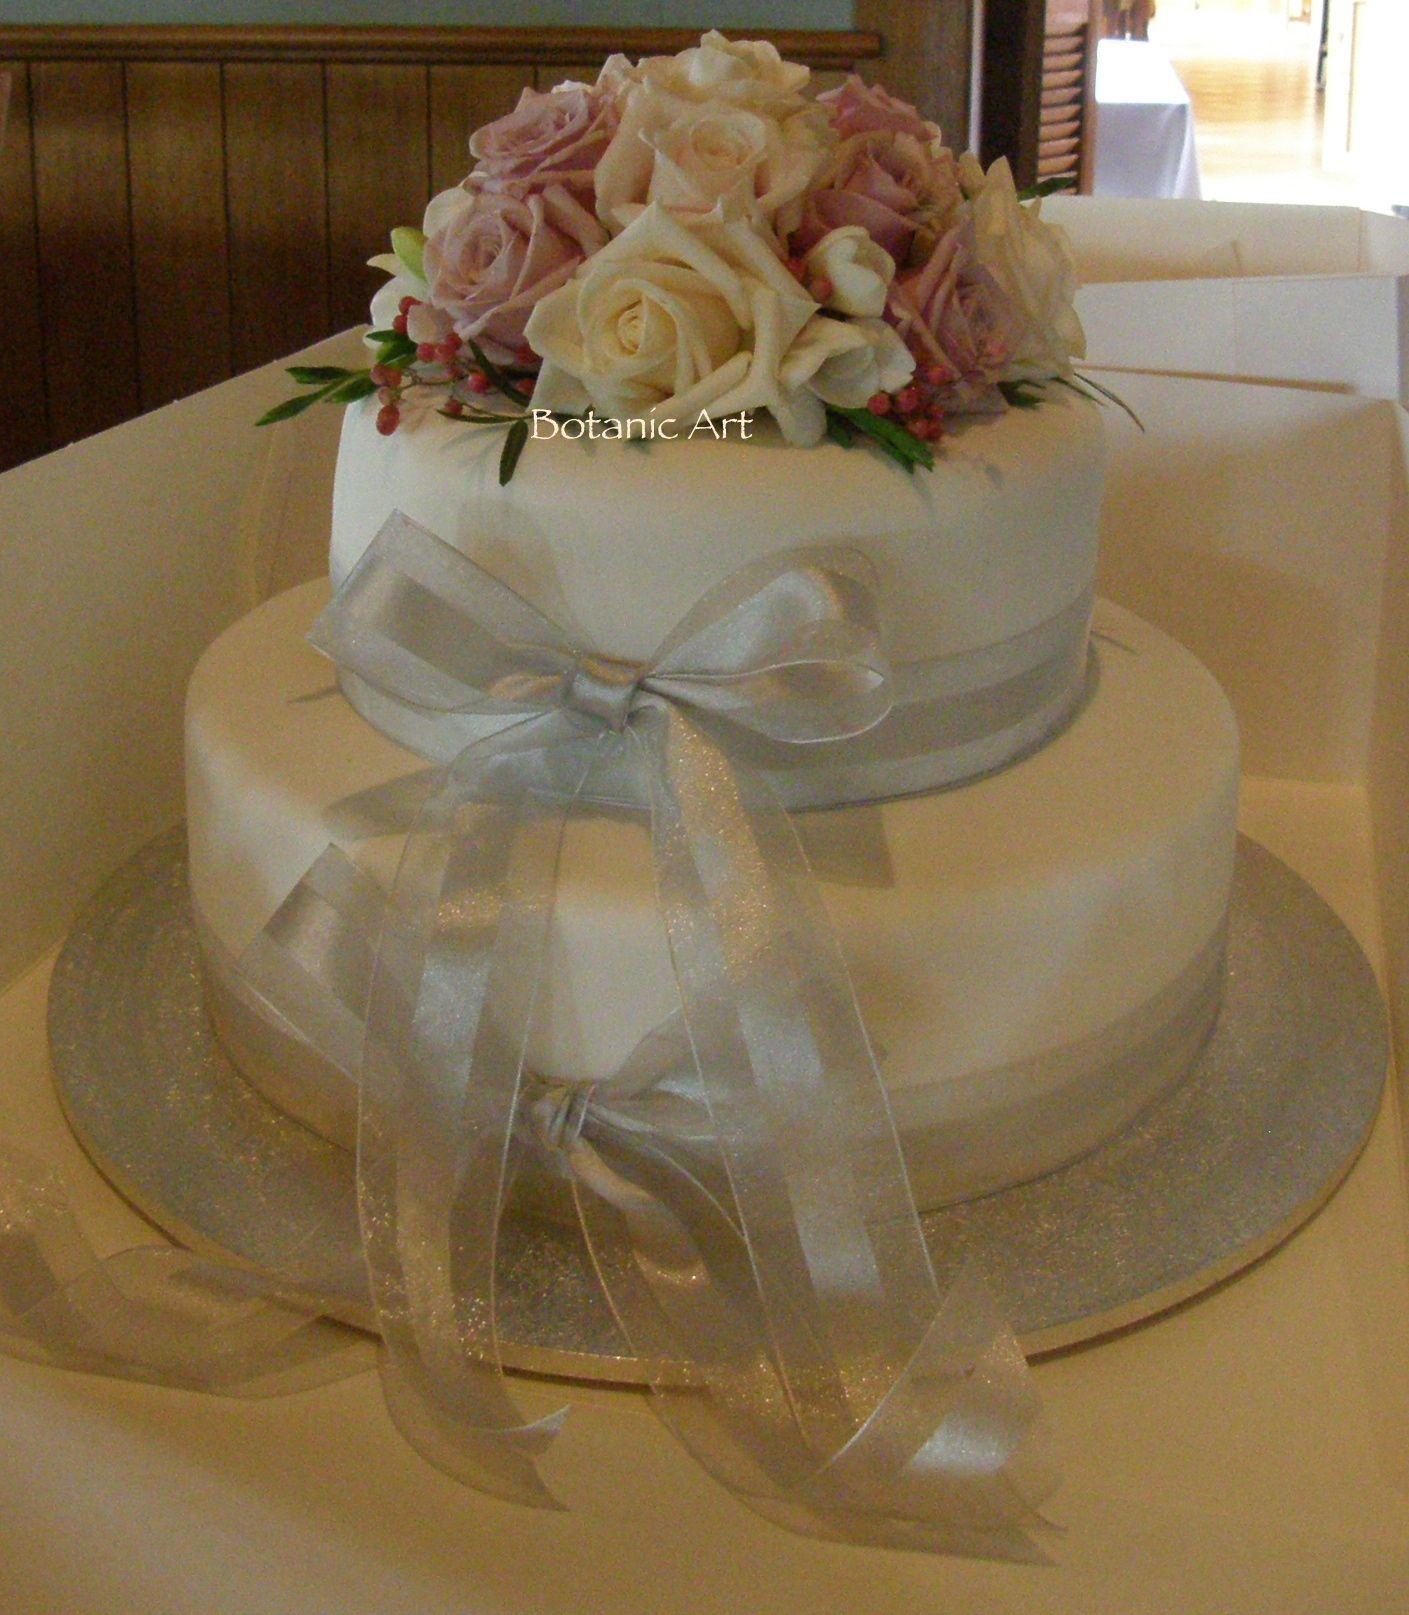 2 Tier Round Fondant Wedding Cake Ribbon Detail With Long Tails A Simple Fresh